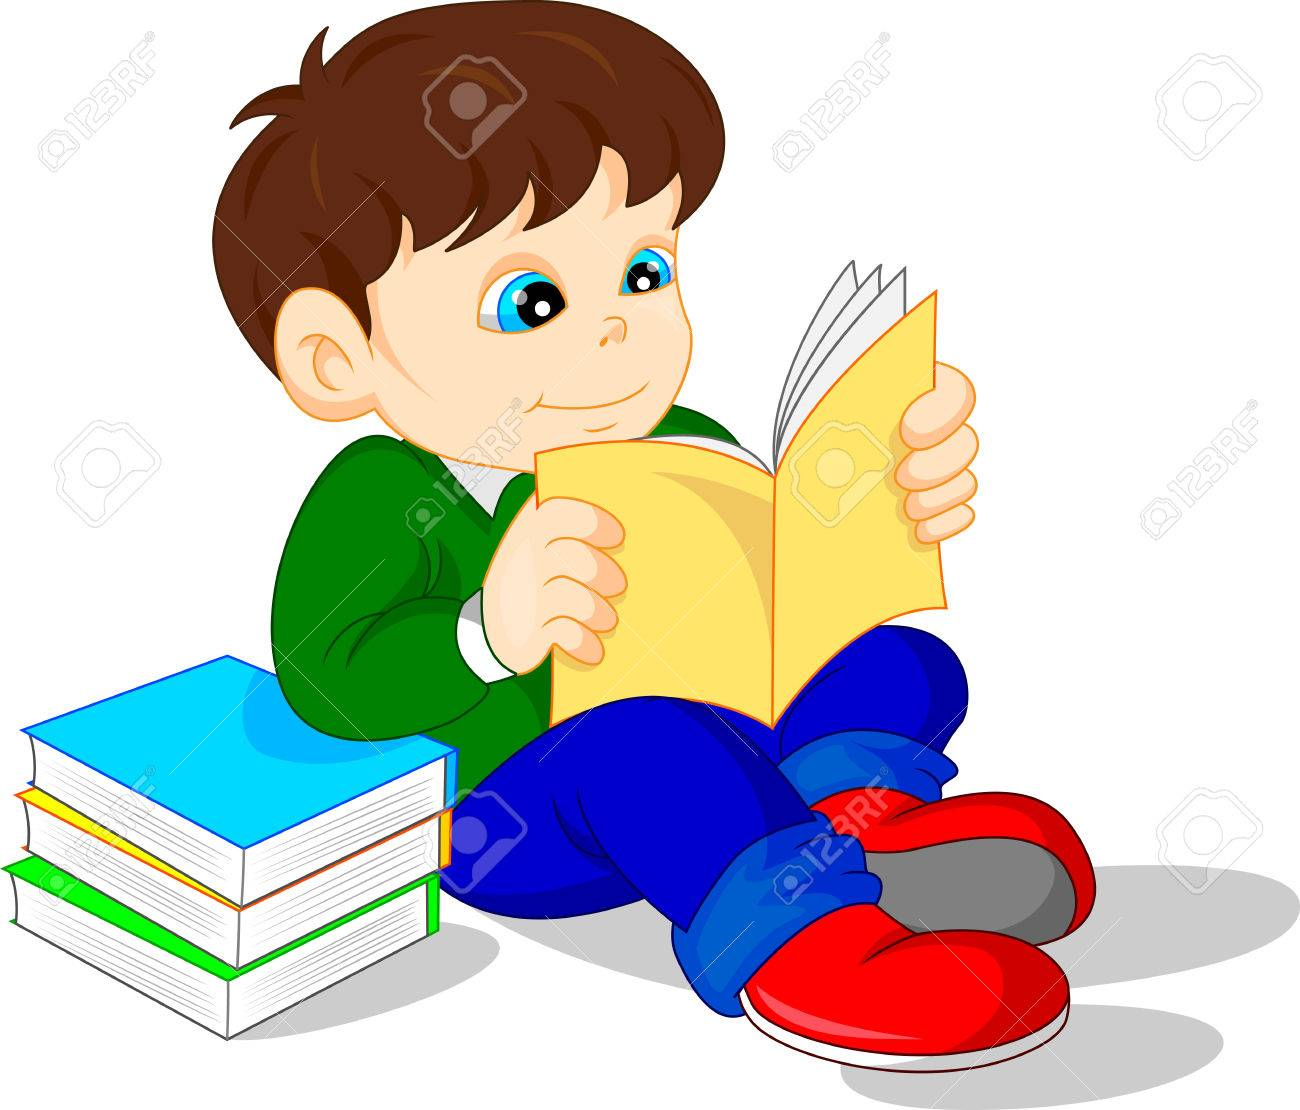 Boy reading books clipart 5 » Clipart Station.